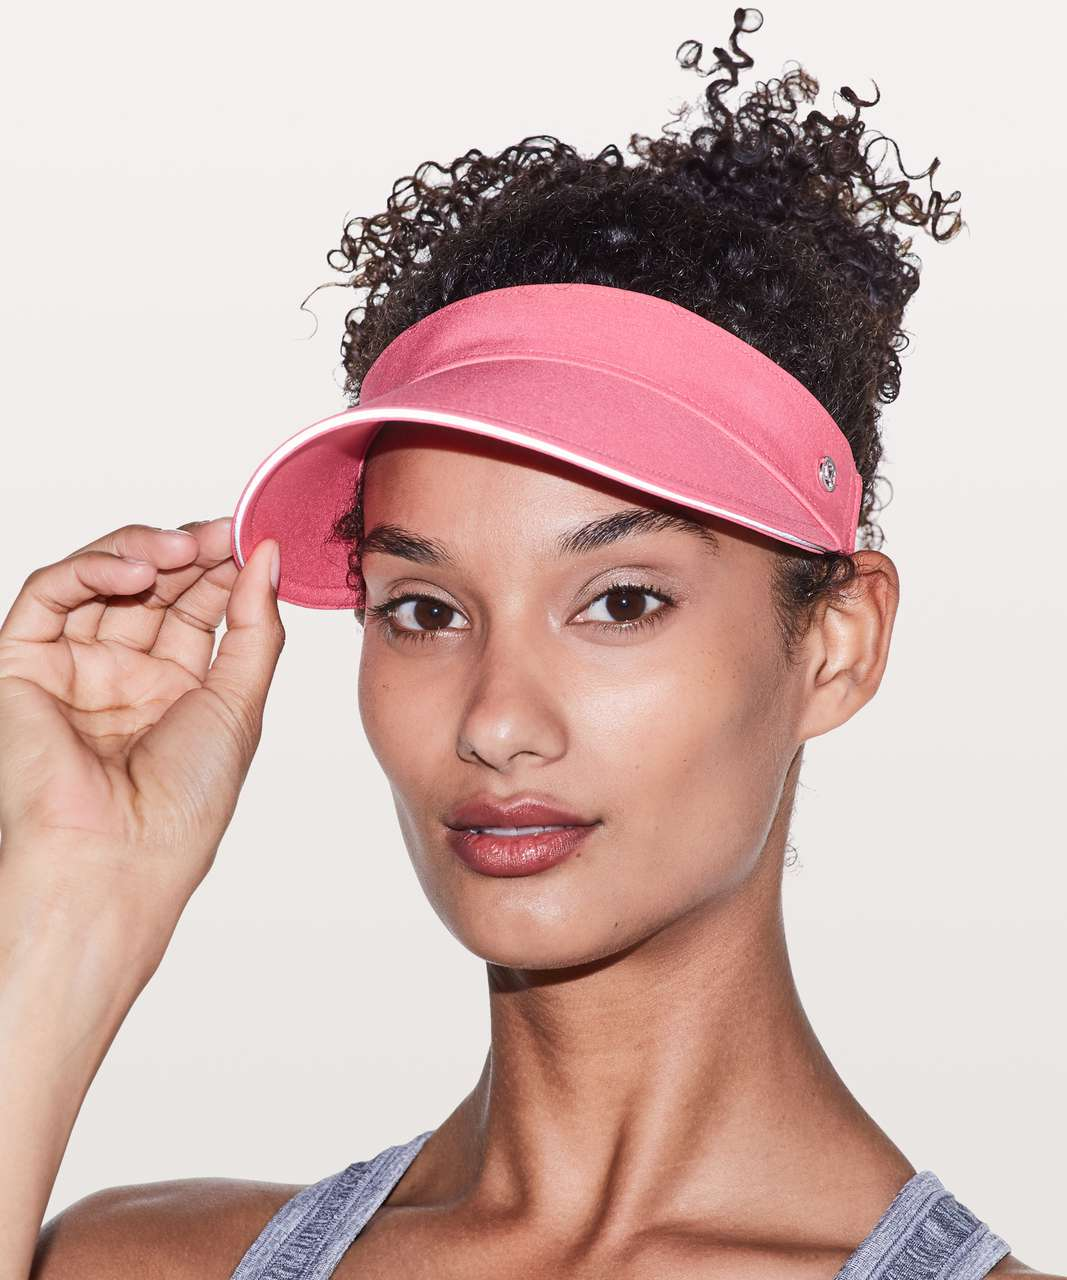 Lululemon Fast Paced Run Visor - Glossy